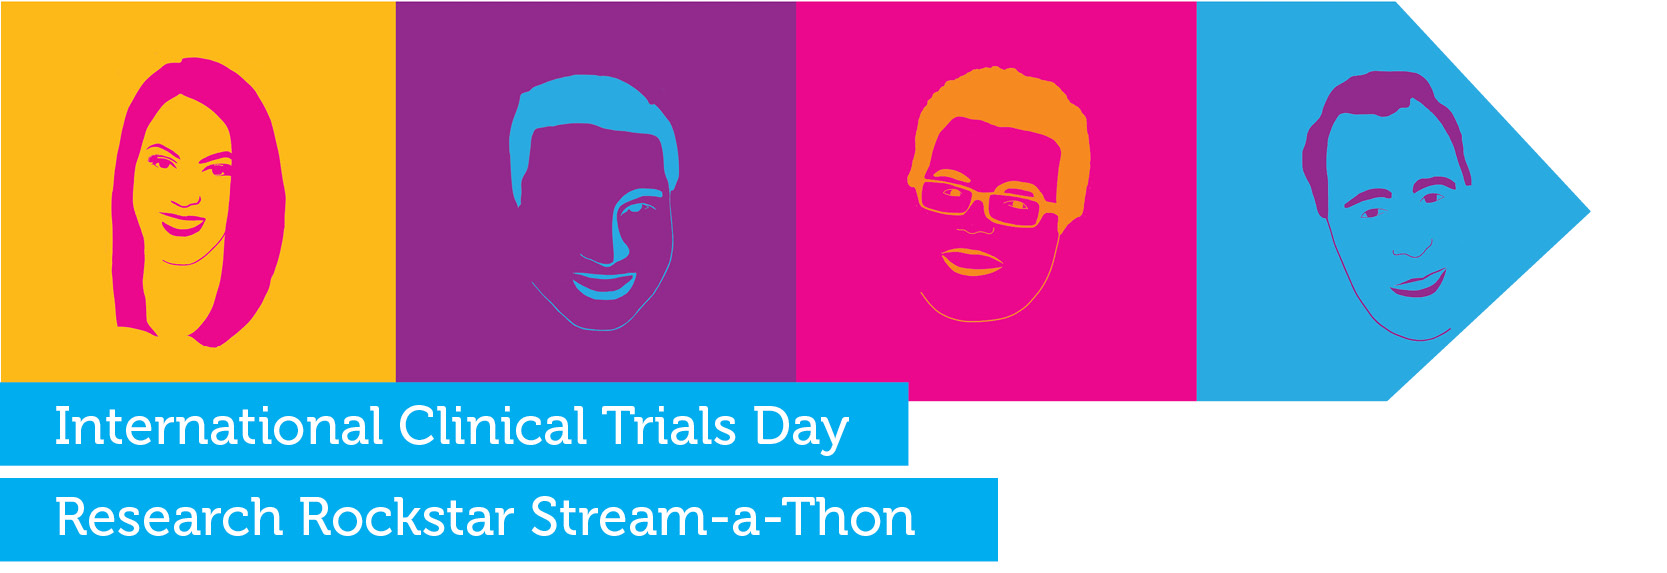 International Clinical Trials Day – Research Rockstar Stream-a-Thon